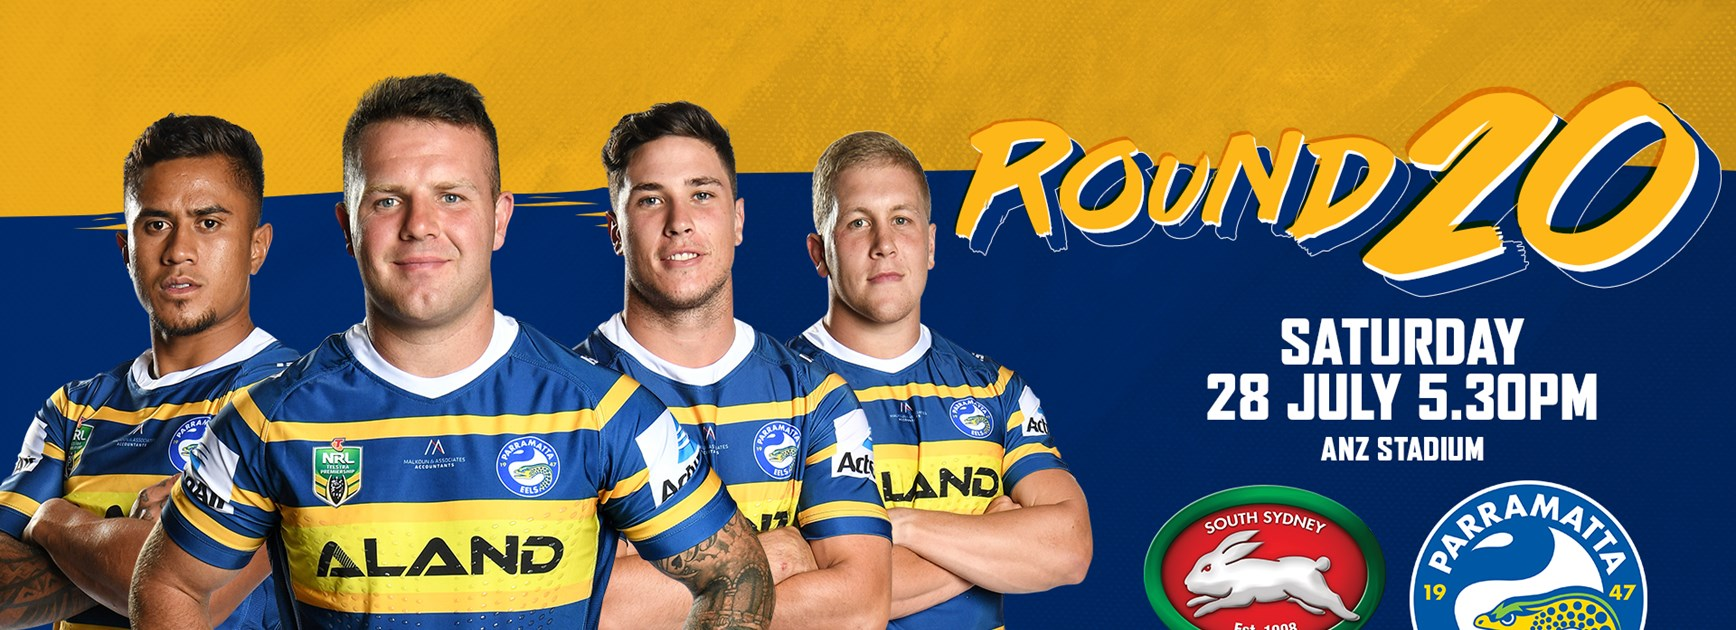 Rabbitohs v Eels Round 20 Team List